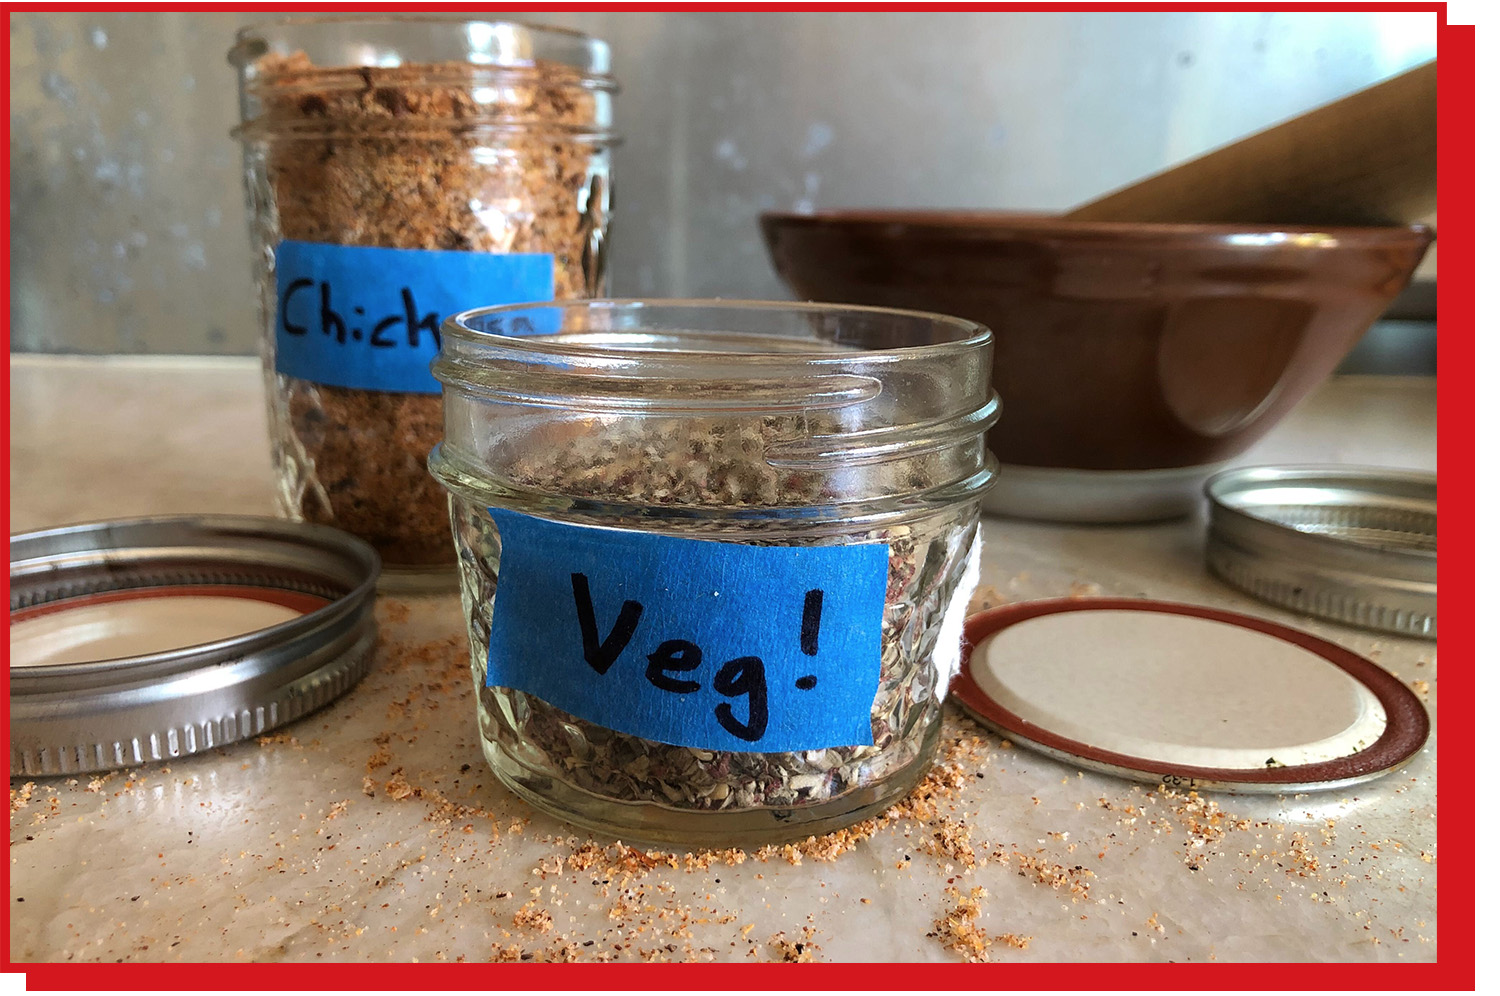 """A small glass container filled with blended spices and a label on the front reading """"Veg!"""""""